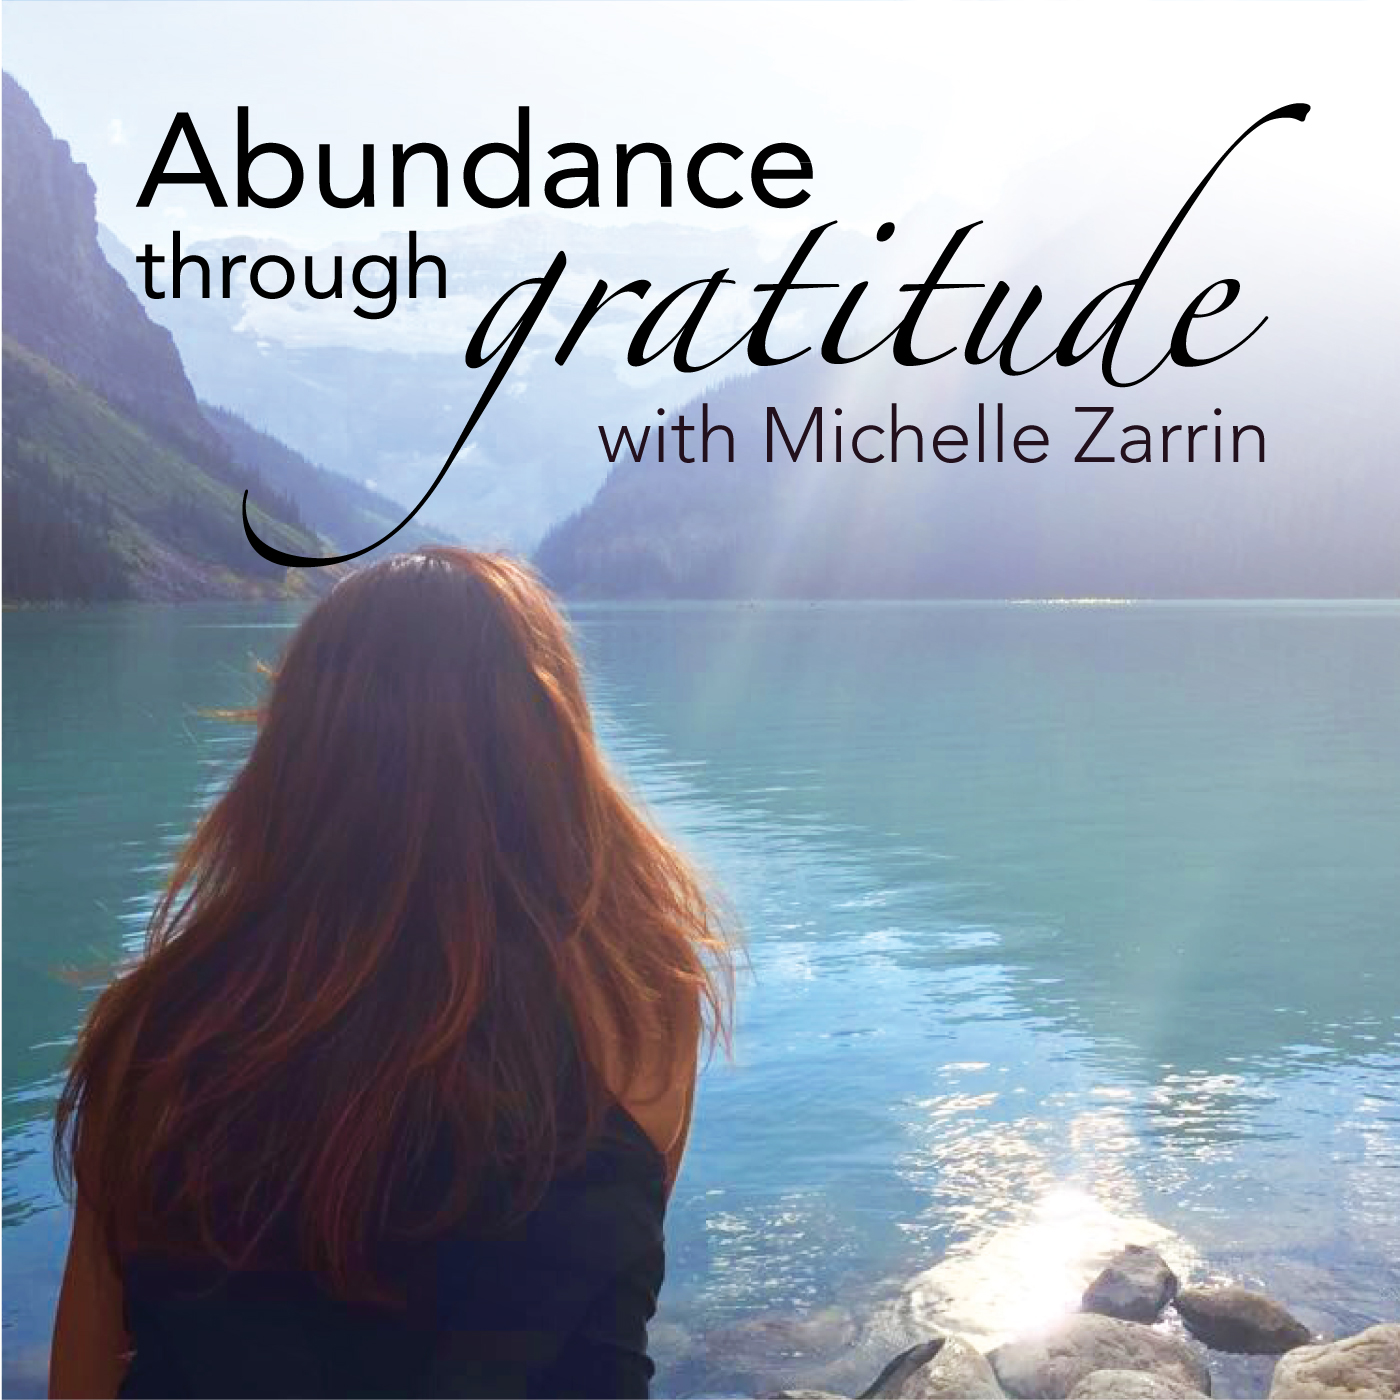 Hello Newsletter Family!  What if I told you the road to abundance is attained through gratitude? Could it be that simple??  YES!!  Imagine this… You have a friend in your life that you love giving gifts to. With enthusiasm, you find the perfect gift and look forward for the opportunity to hand it to your friend. It's what he/she had been asking for so you are elated to gift them.  With joy in your heart, you hand the gift over to your friend. He/she takes it and walks off. You see your friend using the gift you had given but they don't seem too satisfied. They seem to want more.  So you buy more… But each time you give your friend a gift, you are returned the same neutral sentiment – basically no sentiment.  After a while, how does that make you feel?  Would you feel inclined to continue giving?  The answer may be NO.  Well Life is the same way! If we do not make a connection with Life, thank Life for the gifts we have been given, we will not receive more.  The law is simple: What we focus on expands. If we focus on all the good and blessings we have, we will continue to receive more. If we focus on the lack in our lives, we will continue to live in a state of lack.  It truly is this simple.  So in honor of gratitude – the most profound tool and sentiment for abundance, we are releasing a free 10-day guided meditation course on gratitude.  Here's what you can expect: We will begin day 1 with 11 minutes of gratitude meditation. We will add 1 minute per day until we reach 20 minutes of meditation by day 10. Each day we will meditate on one aspect of your life We will begin with aspects of your life that are external – such as the city you live in and your job. As we move further into the course, we will meditate on aspects of your life that are more internal. On day 10 of the course, we will meditate 20 minutes on YOU. This will be a feel-good course.  You will take the time to really sit with aspects of your life you may have taken for granted before.  I Repeat: What you focus on expands. When you focus on the good in your life, the good will continue to expand. Life will give you more reasons to feel and good and to be grateful.  It is this simple.  The course will be released on November 6th.  I will announce the link to the course in an upcoming newsletter.  You can also join our Facebook group to receive updates and further information on gratitude and meditation. The link to our Facebook group is: https://www.facebook.com/groups/2020meditateforpeace/  I'm so excited to share this journey of meditating on gratitude and abundance with you!  If you know of anyone who could benefit from the message of this newsletter, please forward it to them – should be everyone  I wish each of you an inspiring week!  With Gratitude,  Michelle  MichelleZarrin.com info@MichelleZarrin.com